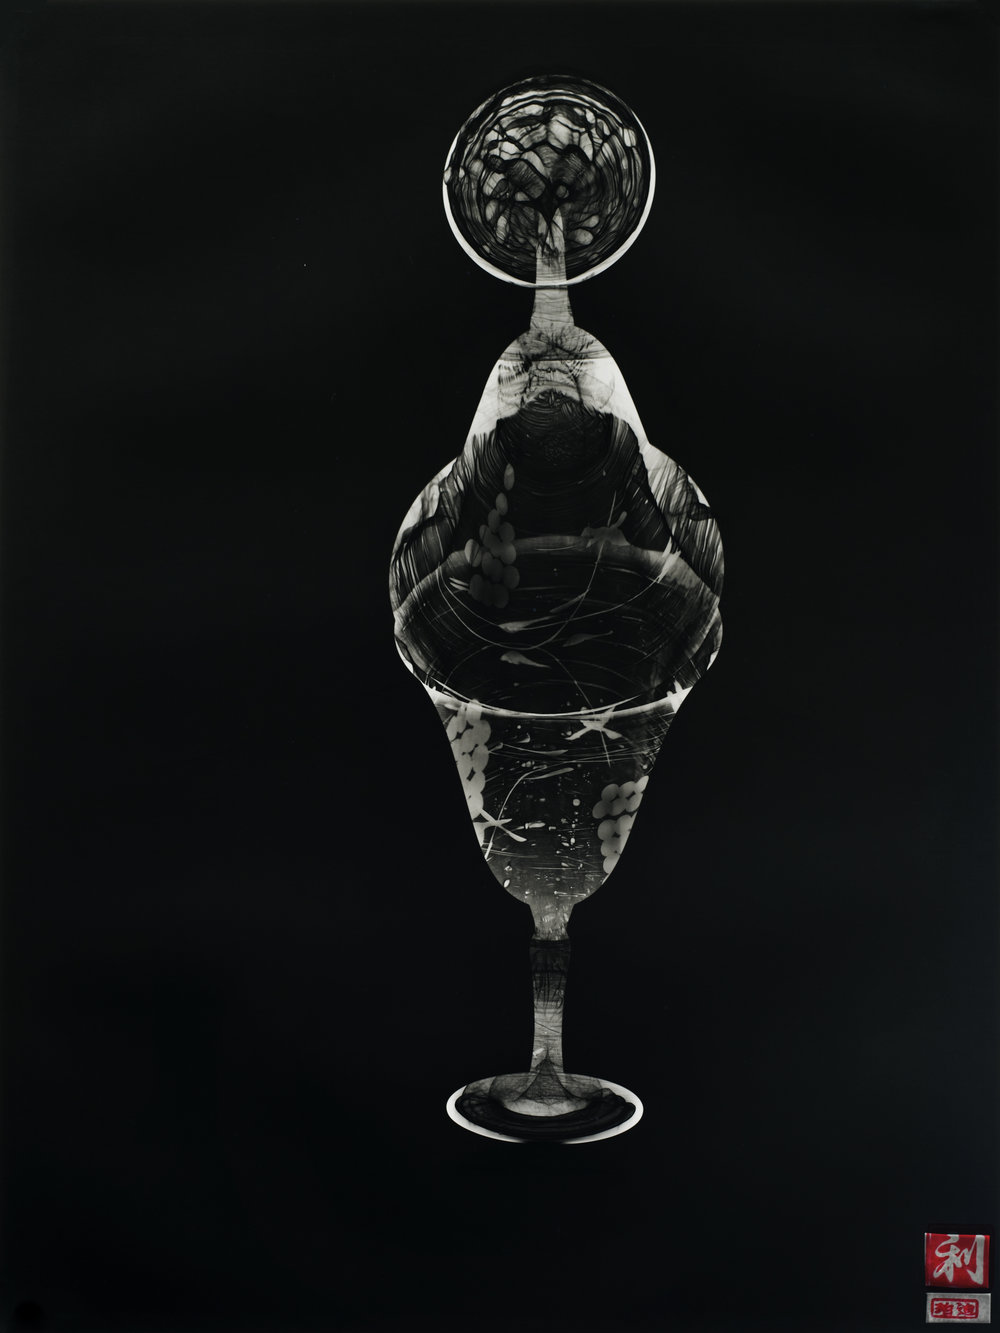 Susan Purdy, Flip, 1999, from the series Love Letters, gelatin silver print with ink, 66.0x44.0cm, Monash Gallery of Art, City of Monash Collection